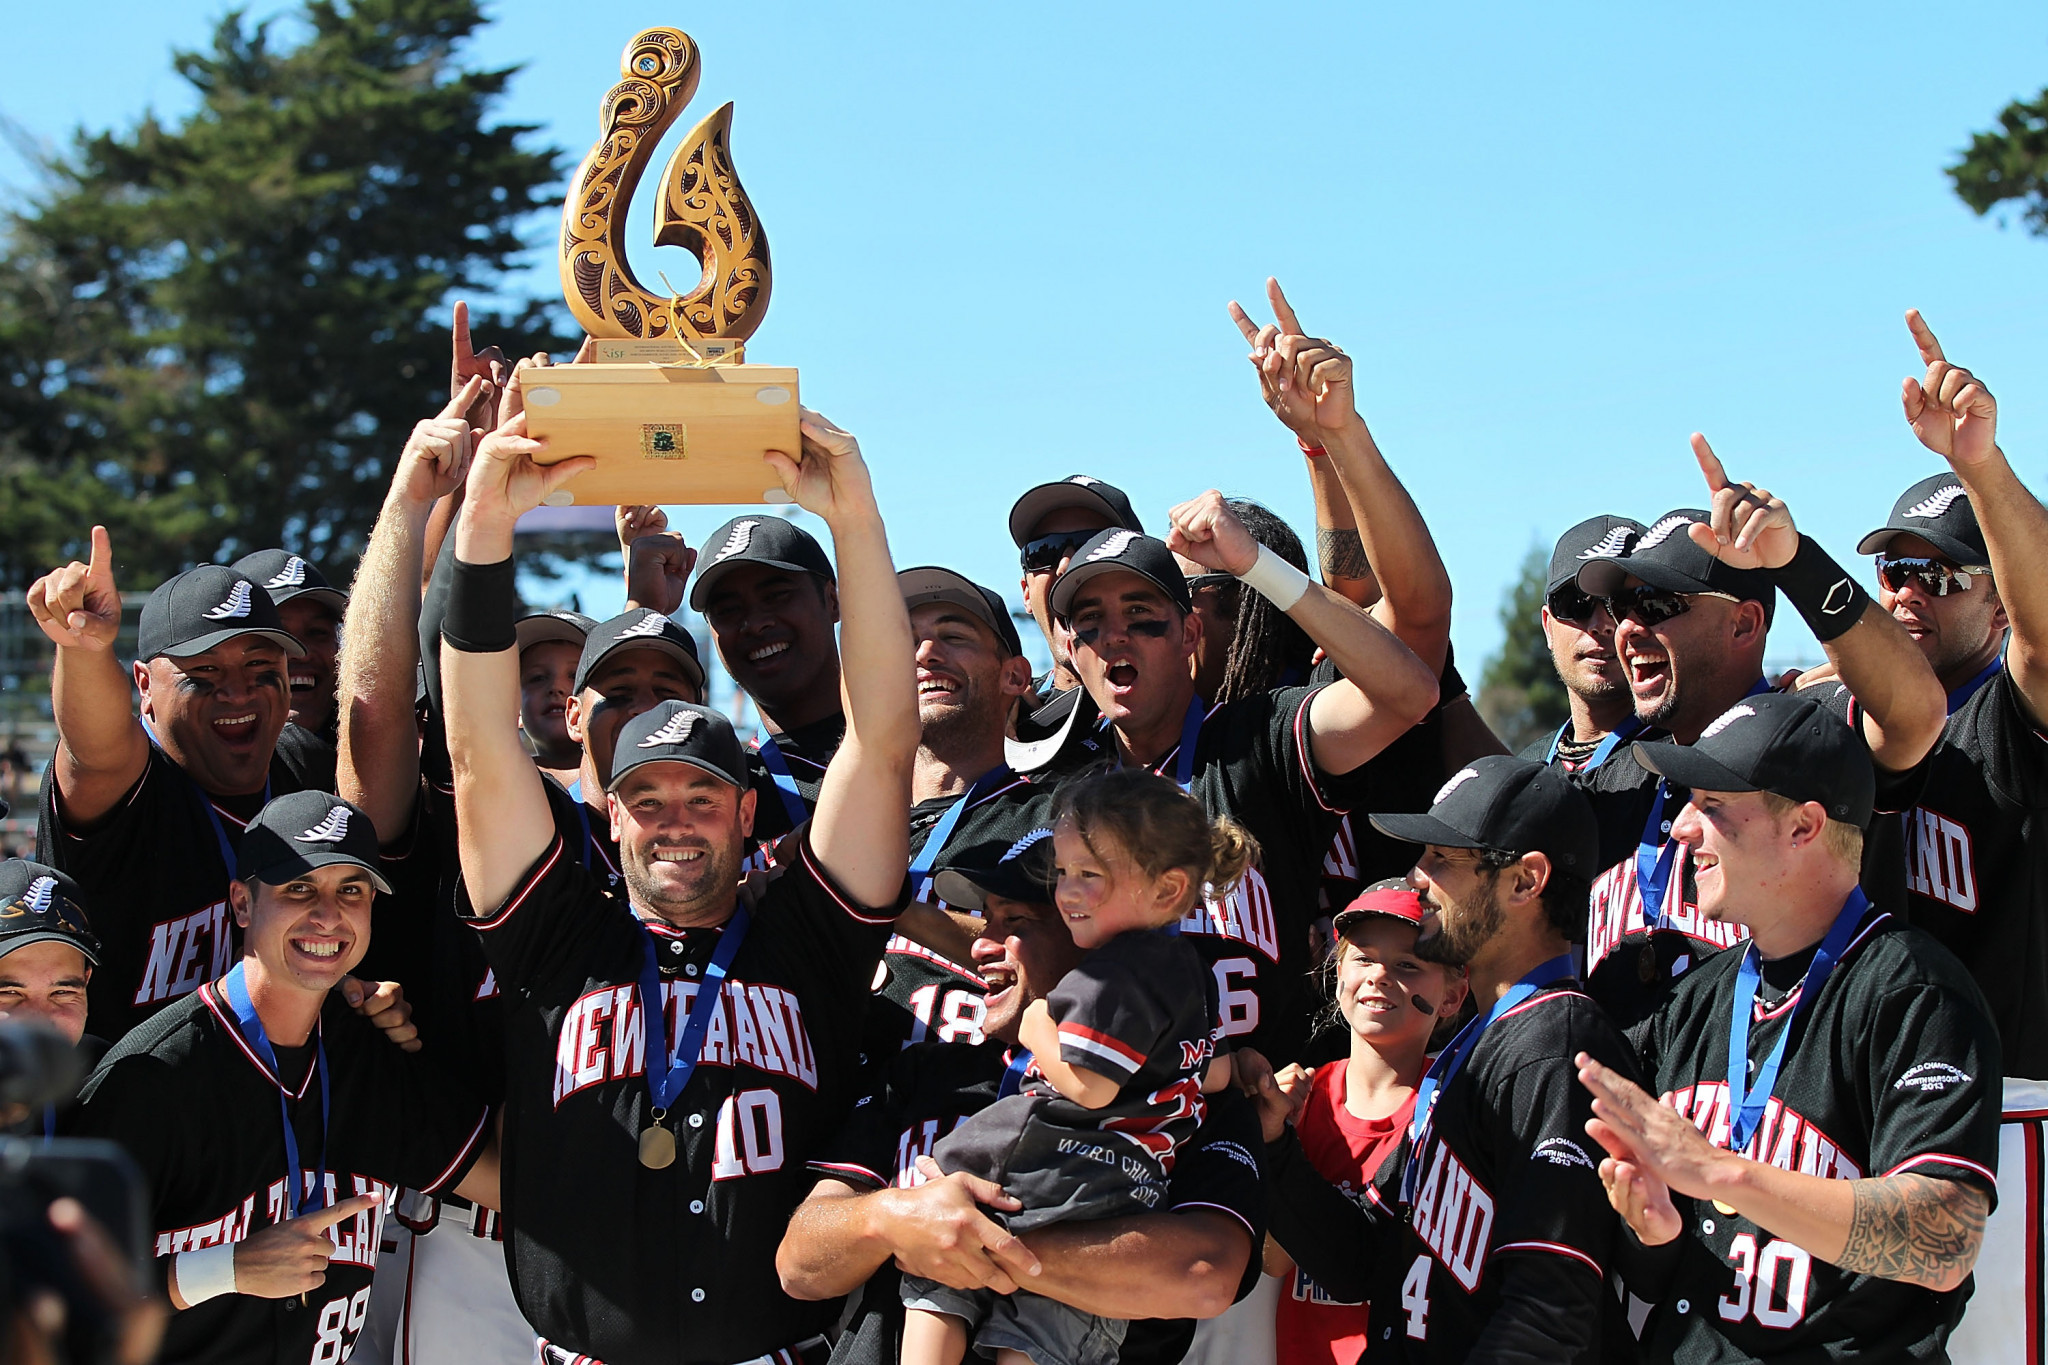 New Zealand remain men's softball world number one